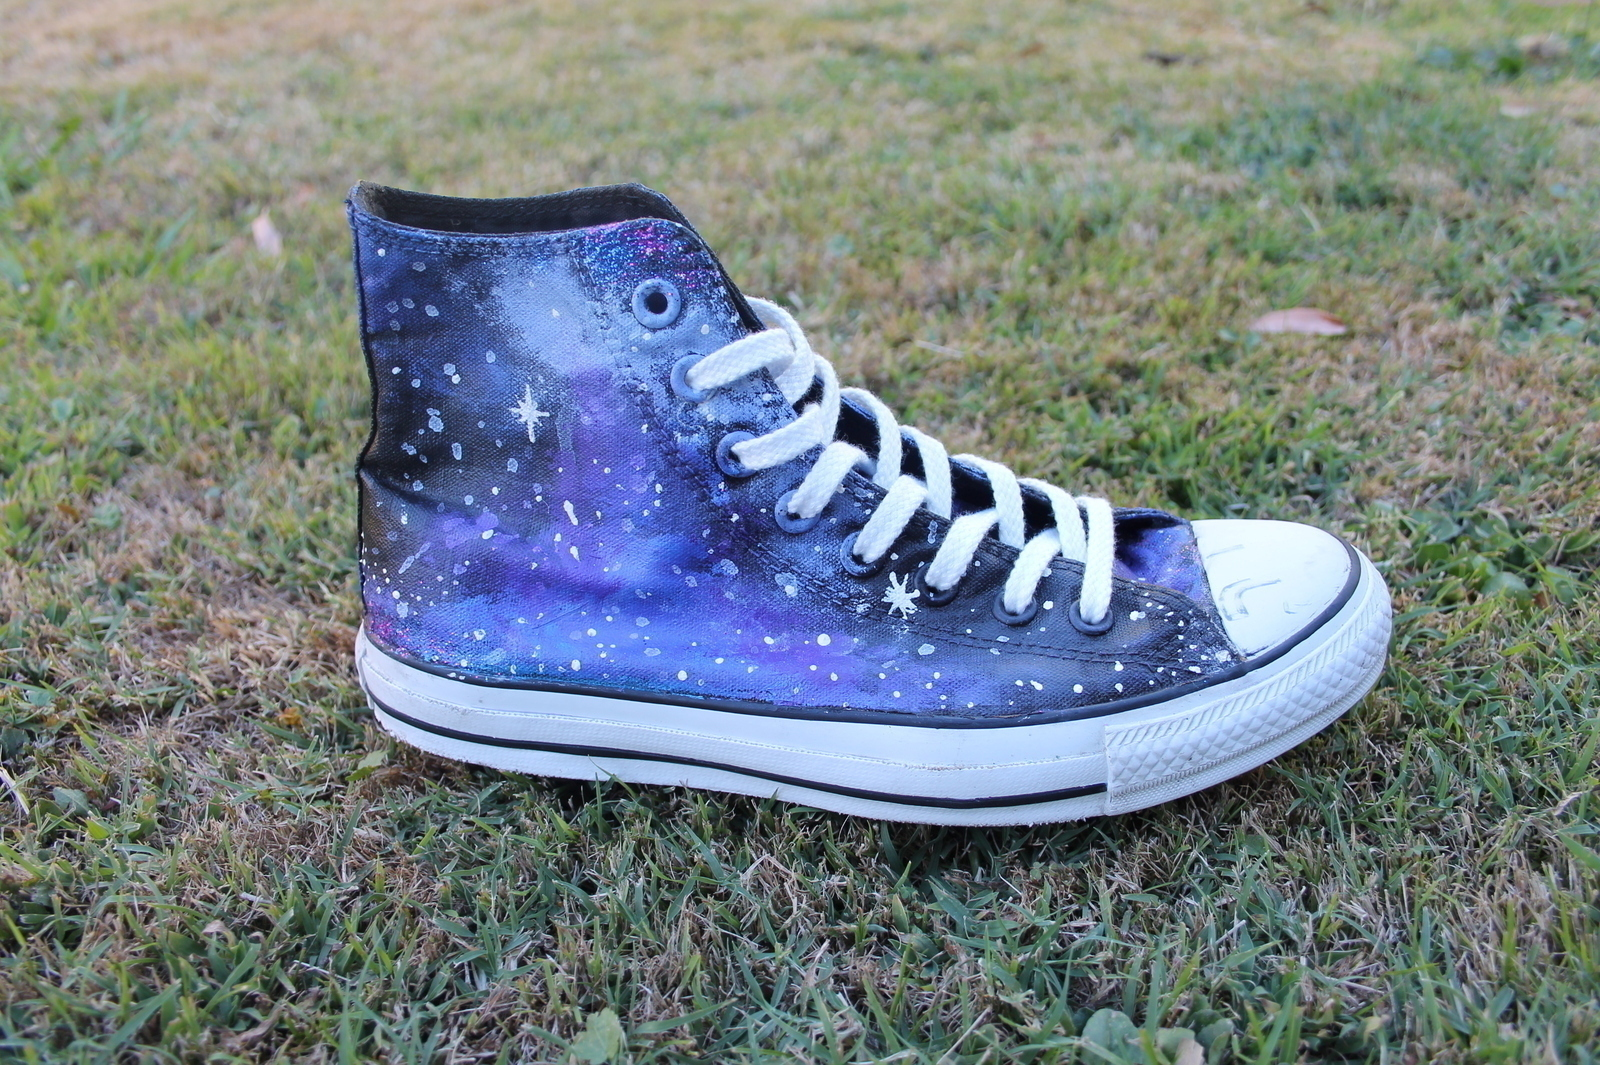 Galaxy Converse 183 A Pair Of Patterned Shoes 183 Art